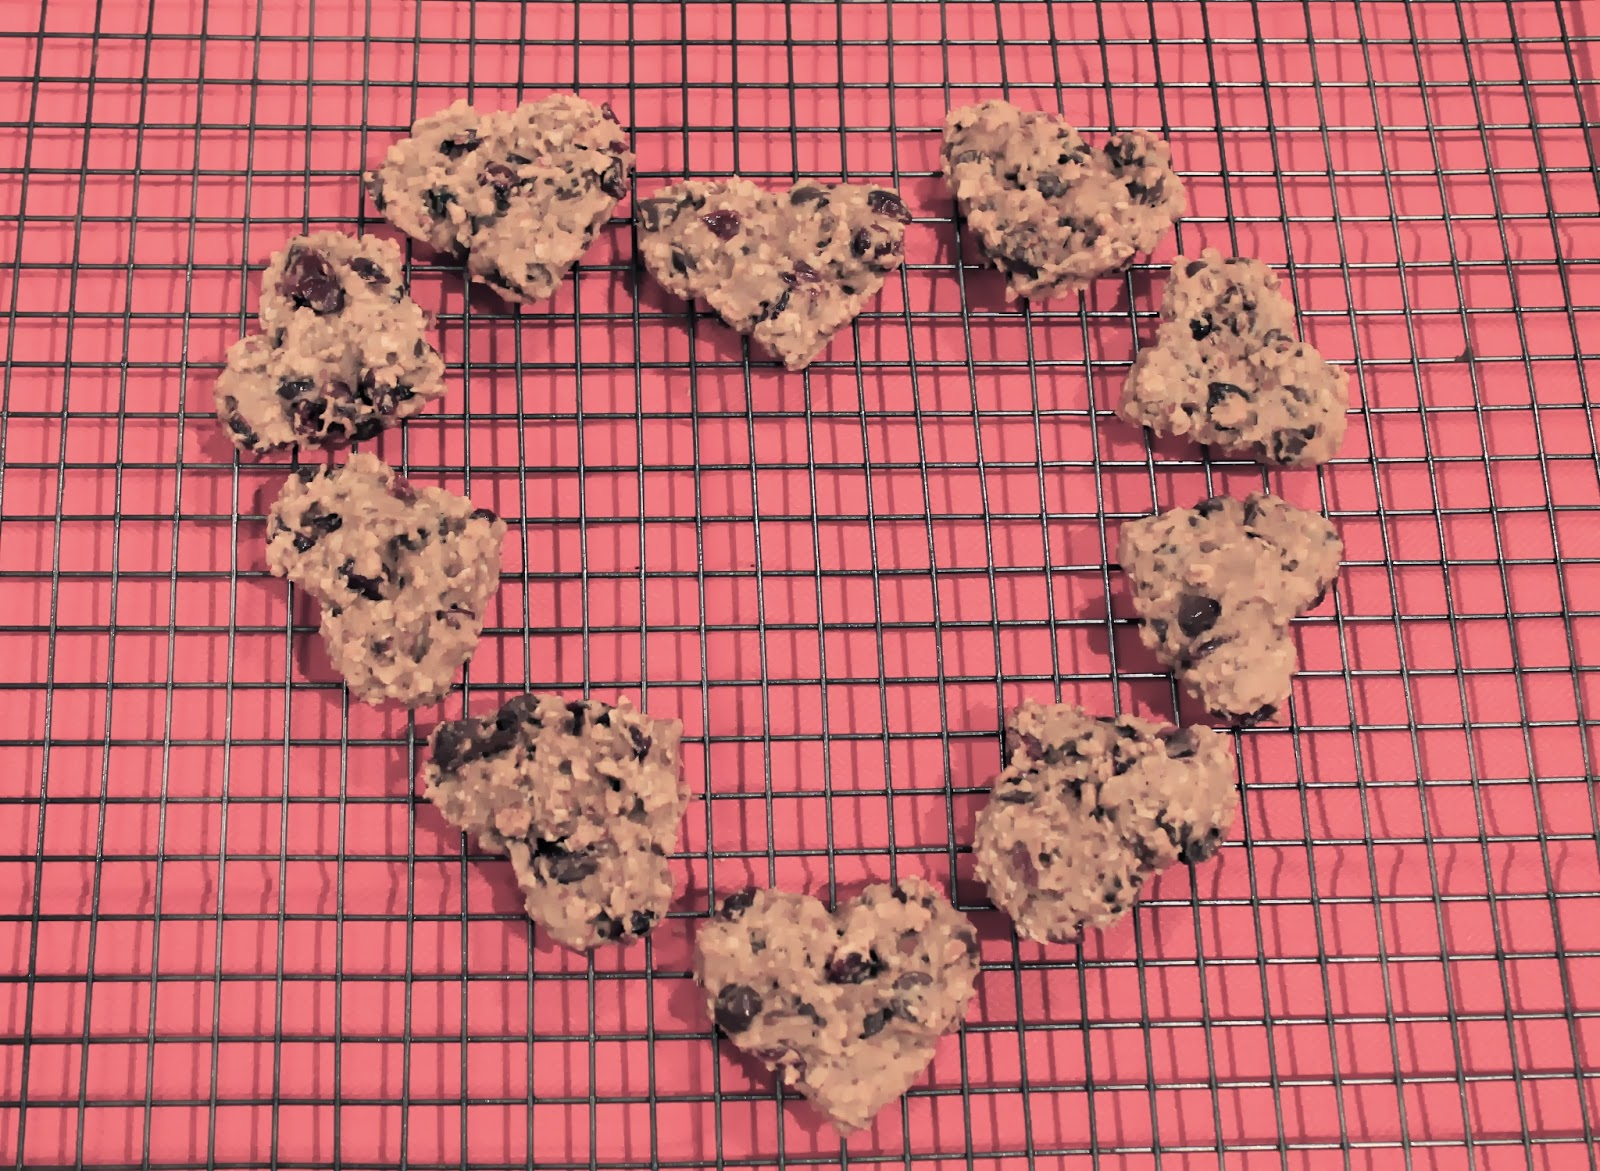 http://lisatsakos.blogspot.ca/2014/02/banana-coconut-oatmeal-chocolate-chip.html